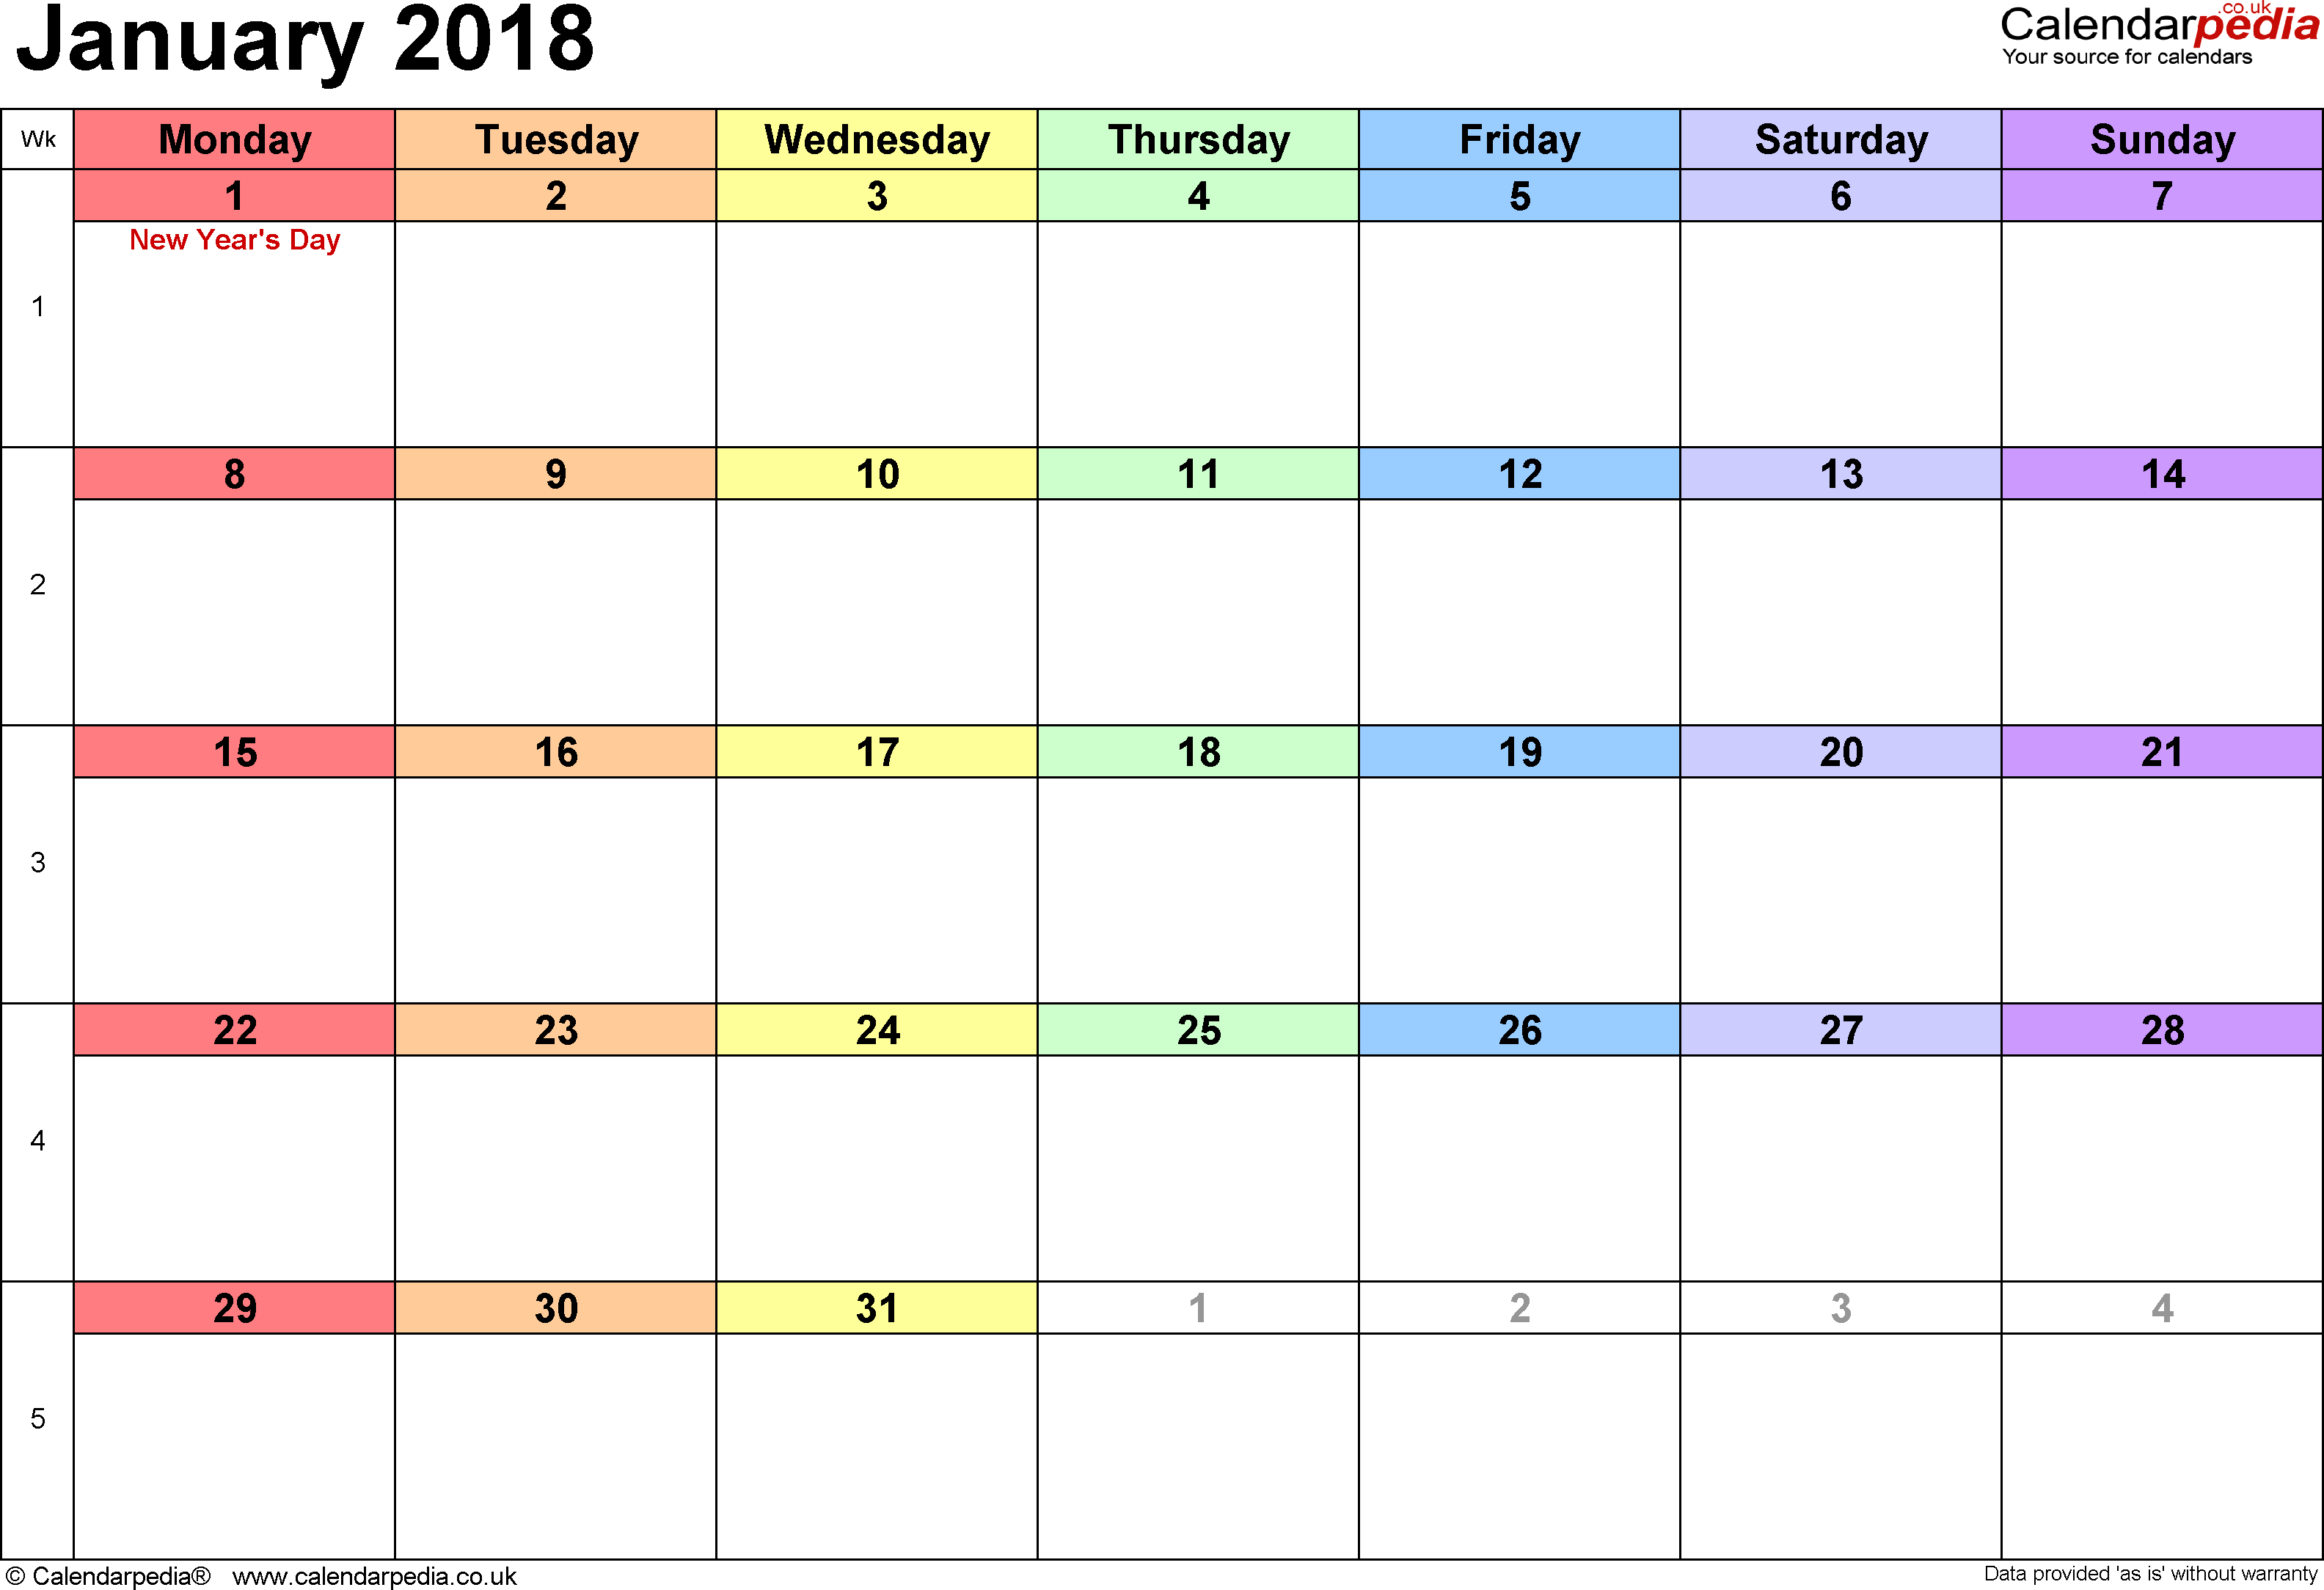 Calendar January 2018 UK, Bank Holidays, Excel/PDF/Word Templates